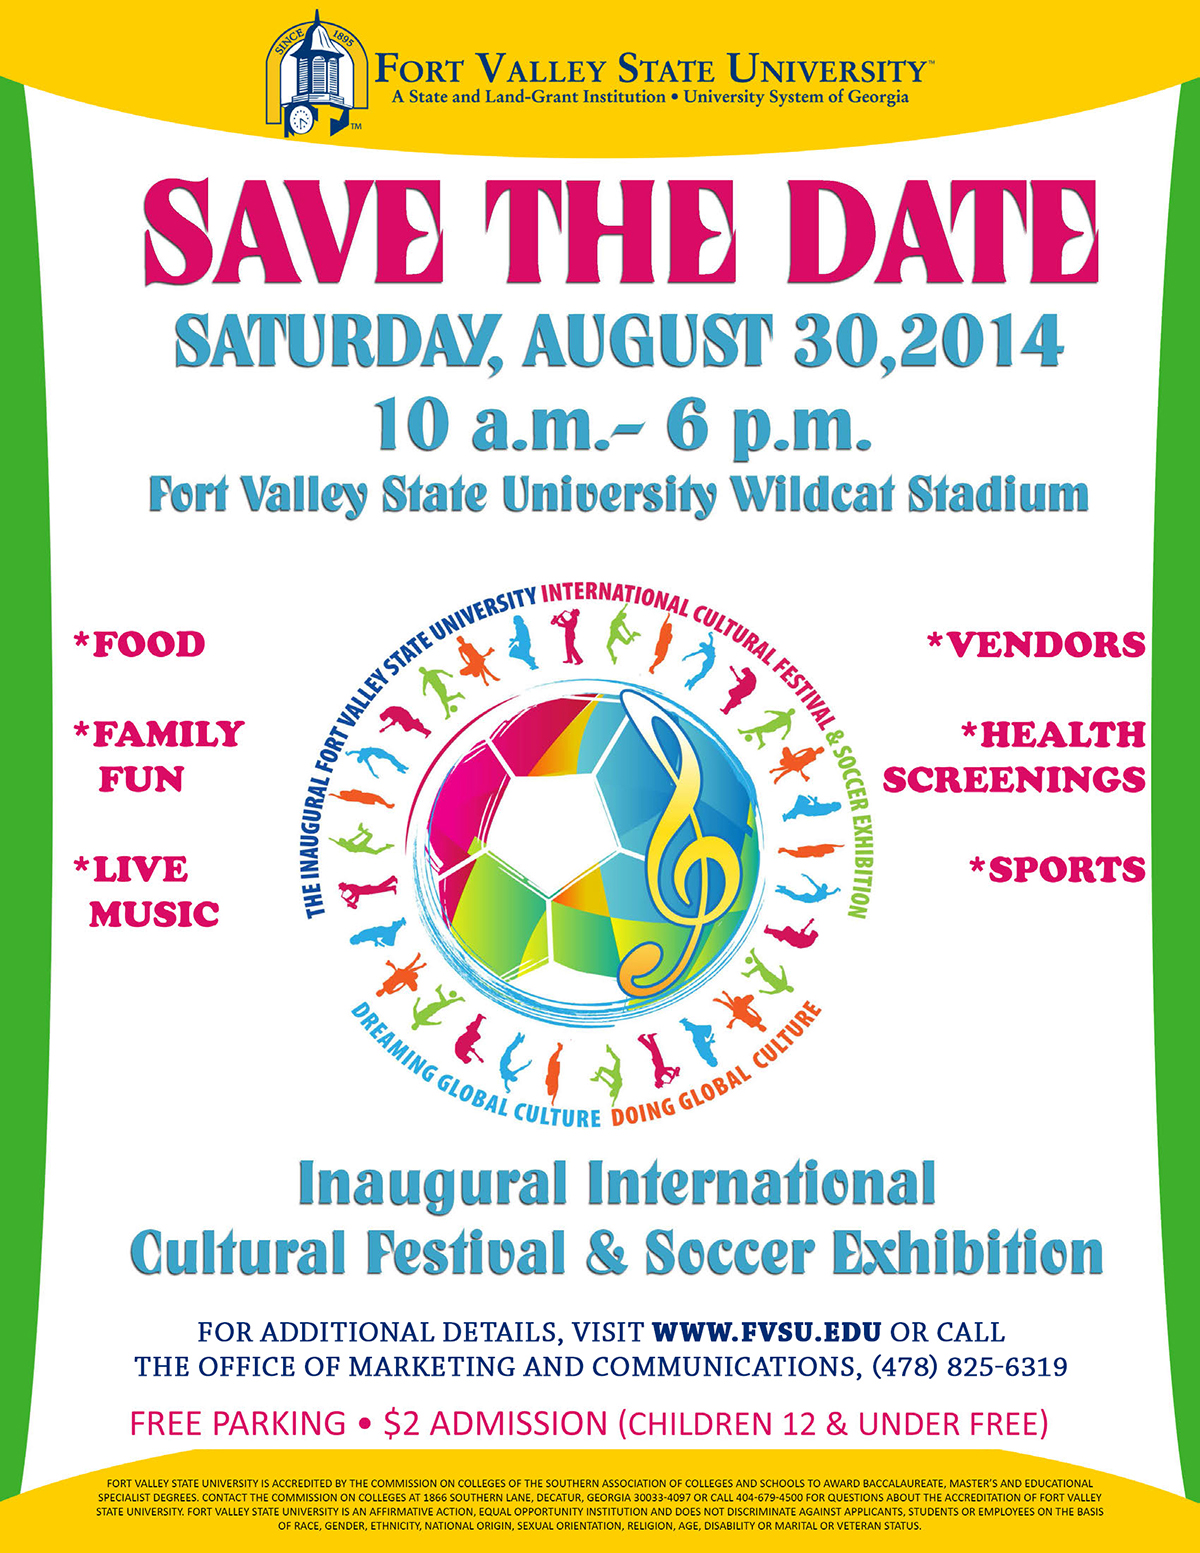 FVSU to host first International Cultural Festival and Soccer Exhibition